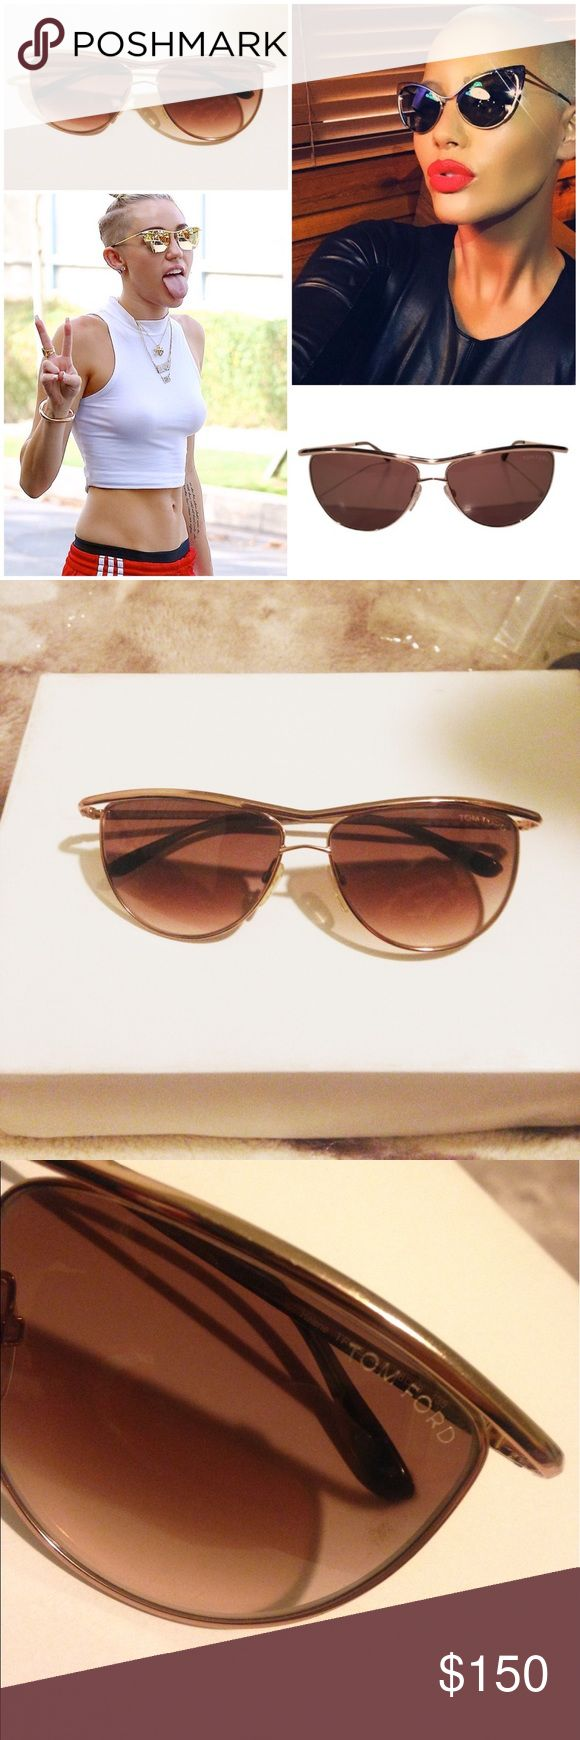 AUTHENTIC 💯 Tom Ford Helena Gold oval sunglasses Authentic Tom Ford Sunglasses Made in Italy, cover photo is not for sale. Glasses only for sell, no box!. These in particle have been through a lot. It's traveled different countries & has been worn a lot. I've even payed to get it fixed (see last picture) to tighten the right side. No HARSH scratches but if you hold them up in sunlight you will see wear on them. I've had these for 2 yrs & It's time to get another.Check my 5 Star Rating…